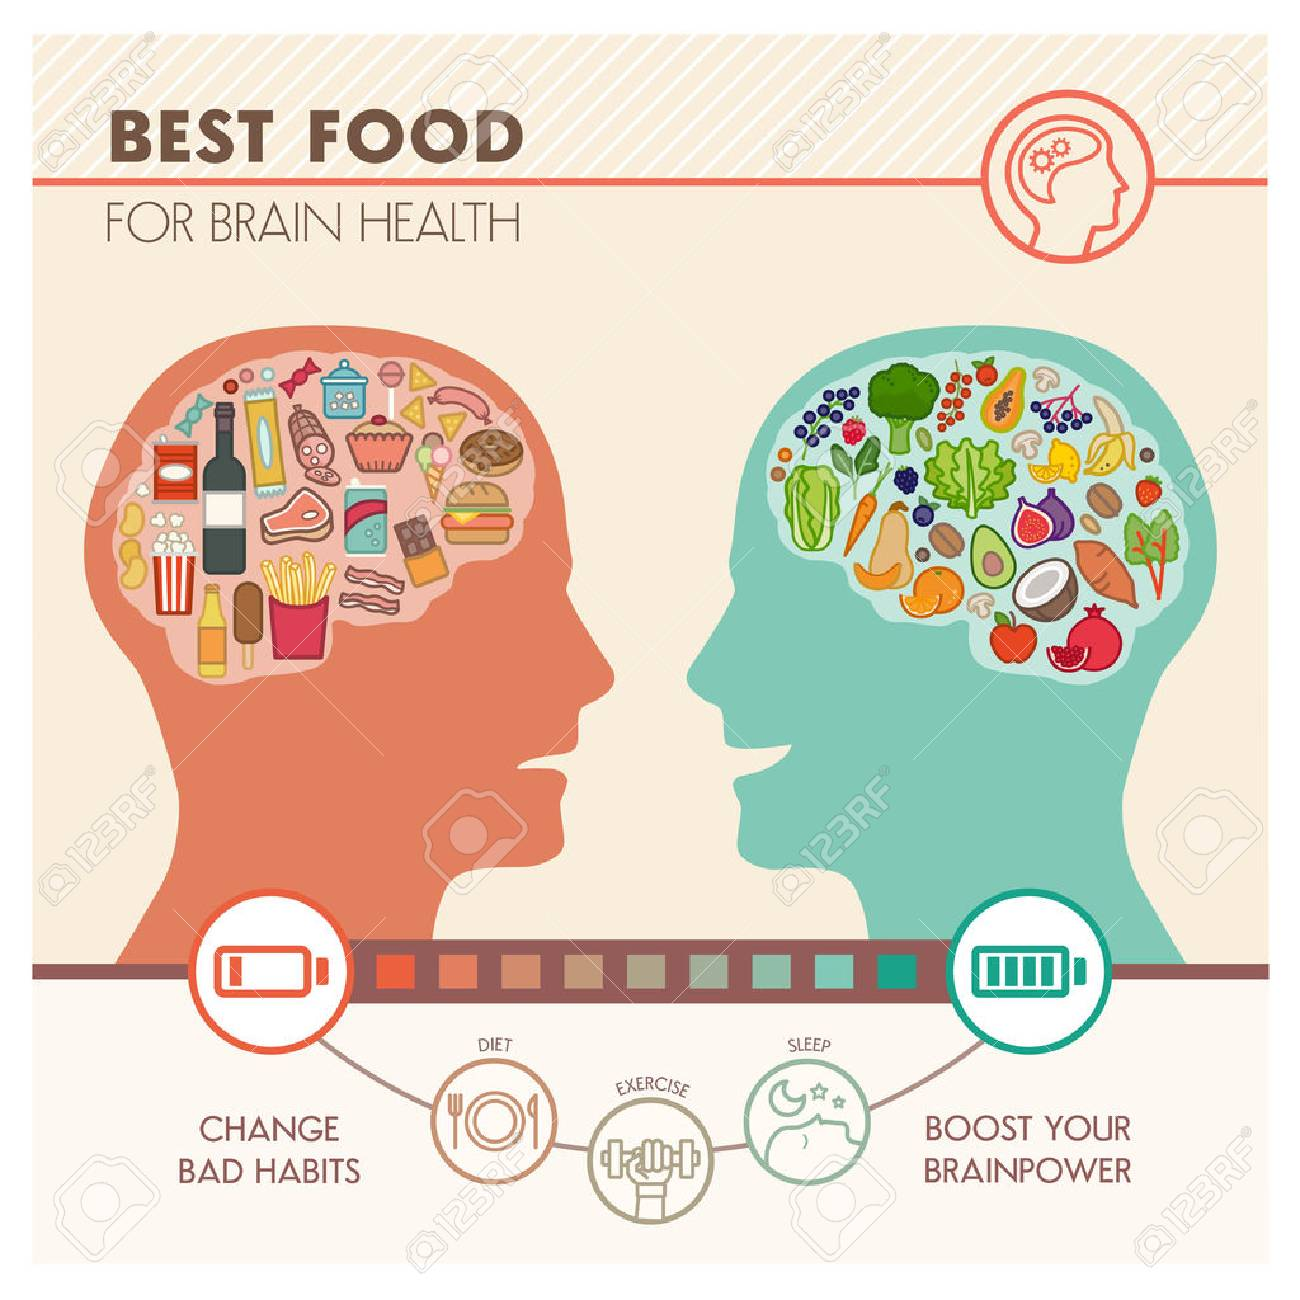 Junk unhealthy food and healthy vegetables diet comparison, best food for brain infographic - 58290171